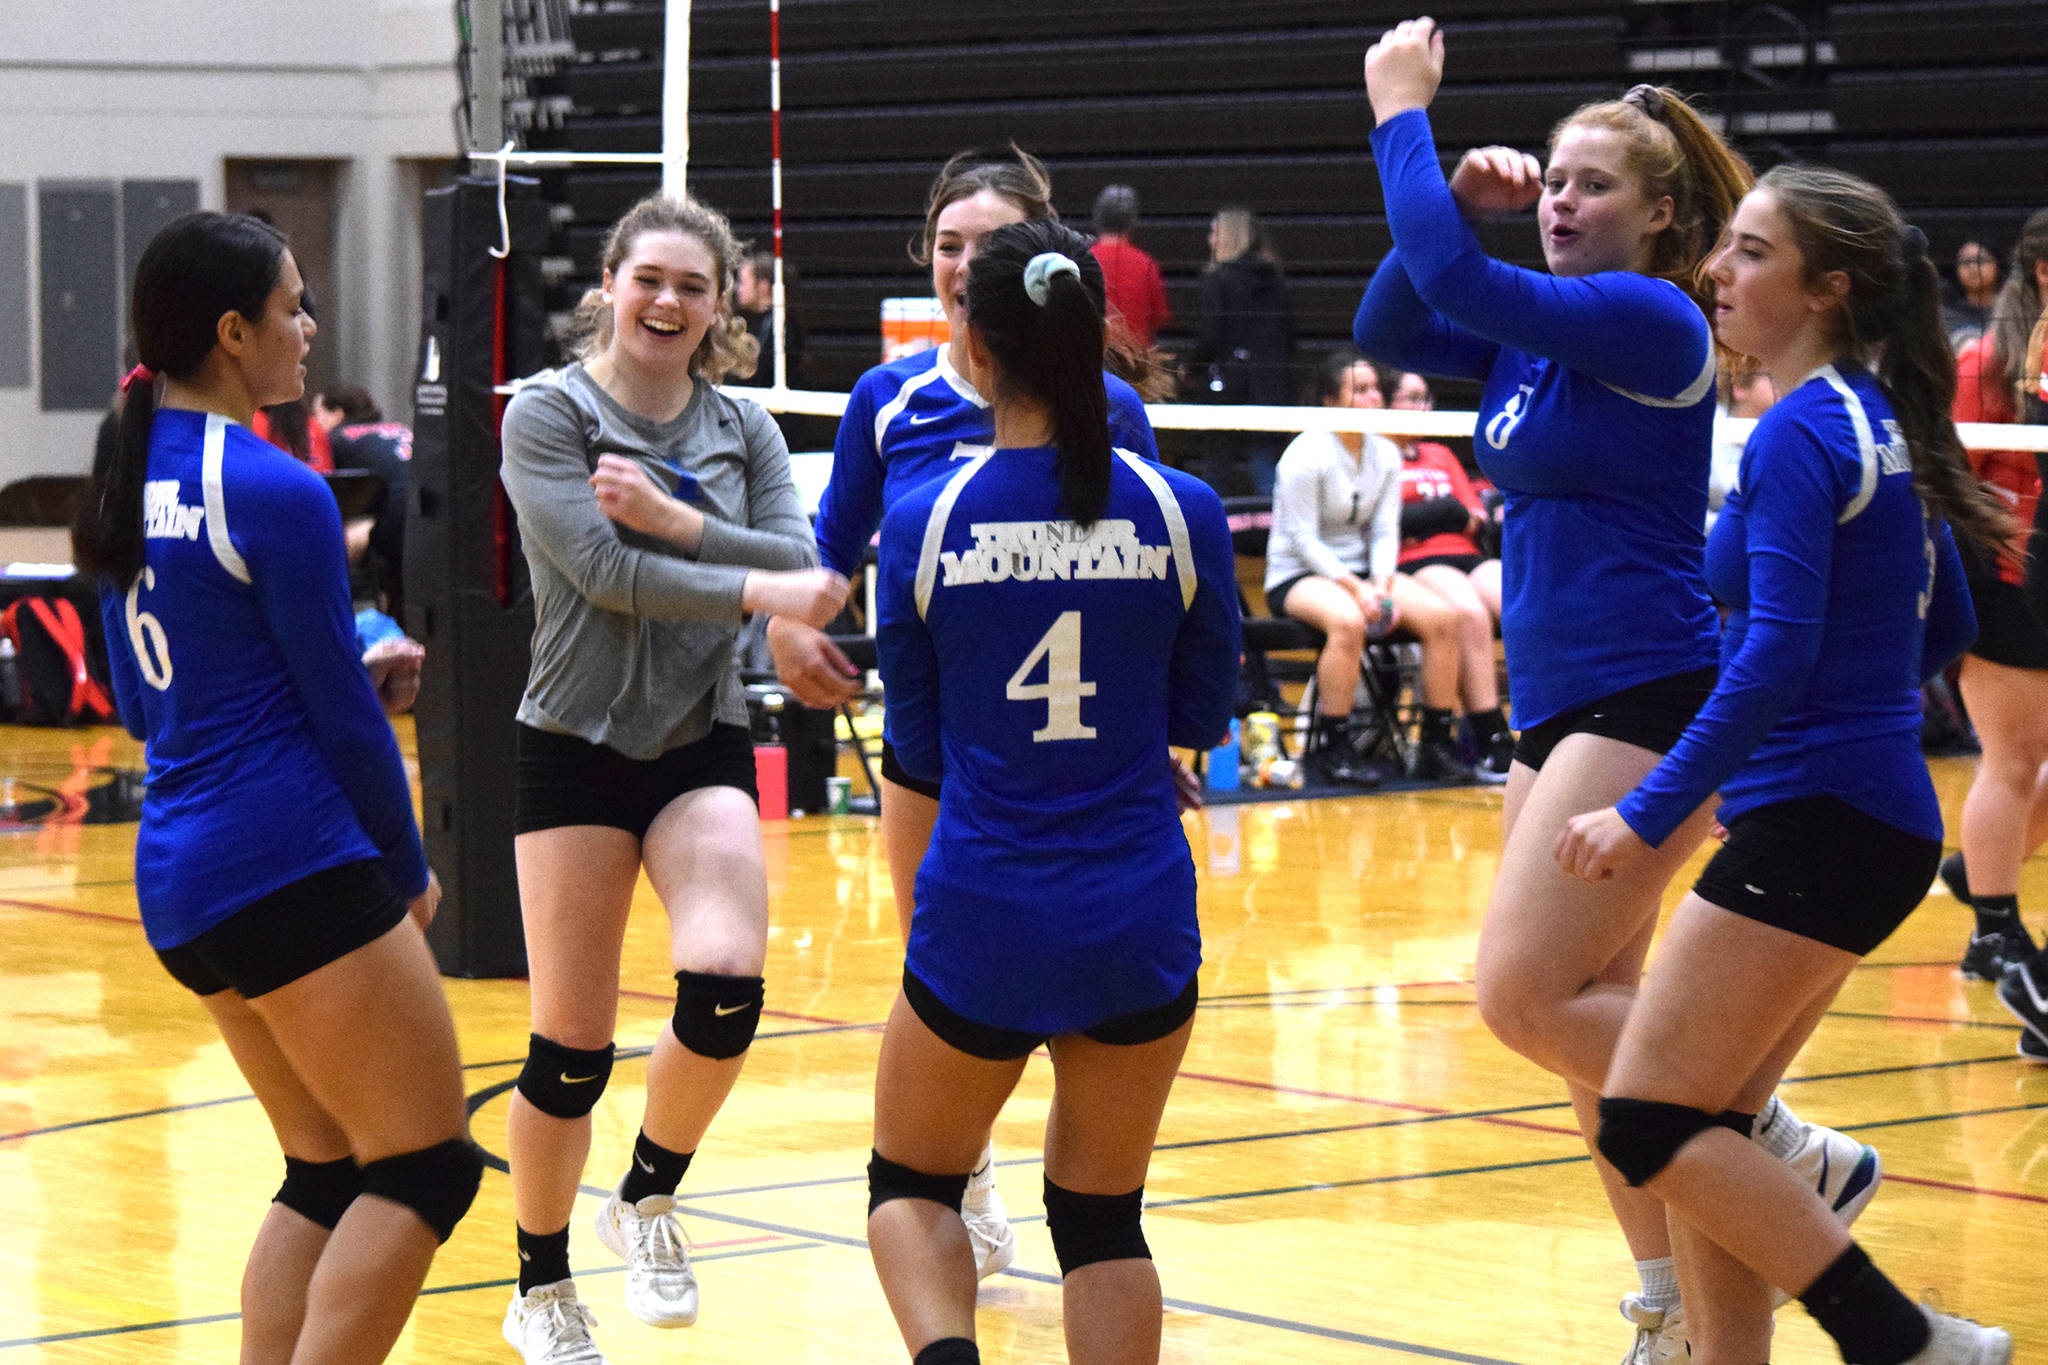 Thunder Mountain High School celebrates a point against Klawock at the Juneau Invitational Volleyball Extravaganza at Juneau-Douglas High School: Yadaat.at Kalé on Friday, Oct. 11, 2019. (Nolin Ainsworth | Juneau Empire)